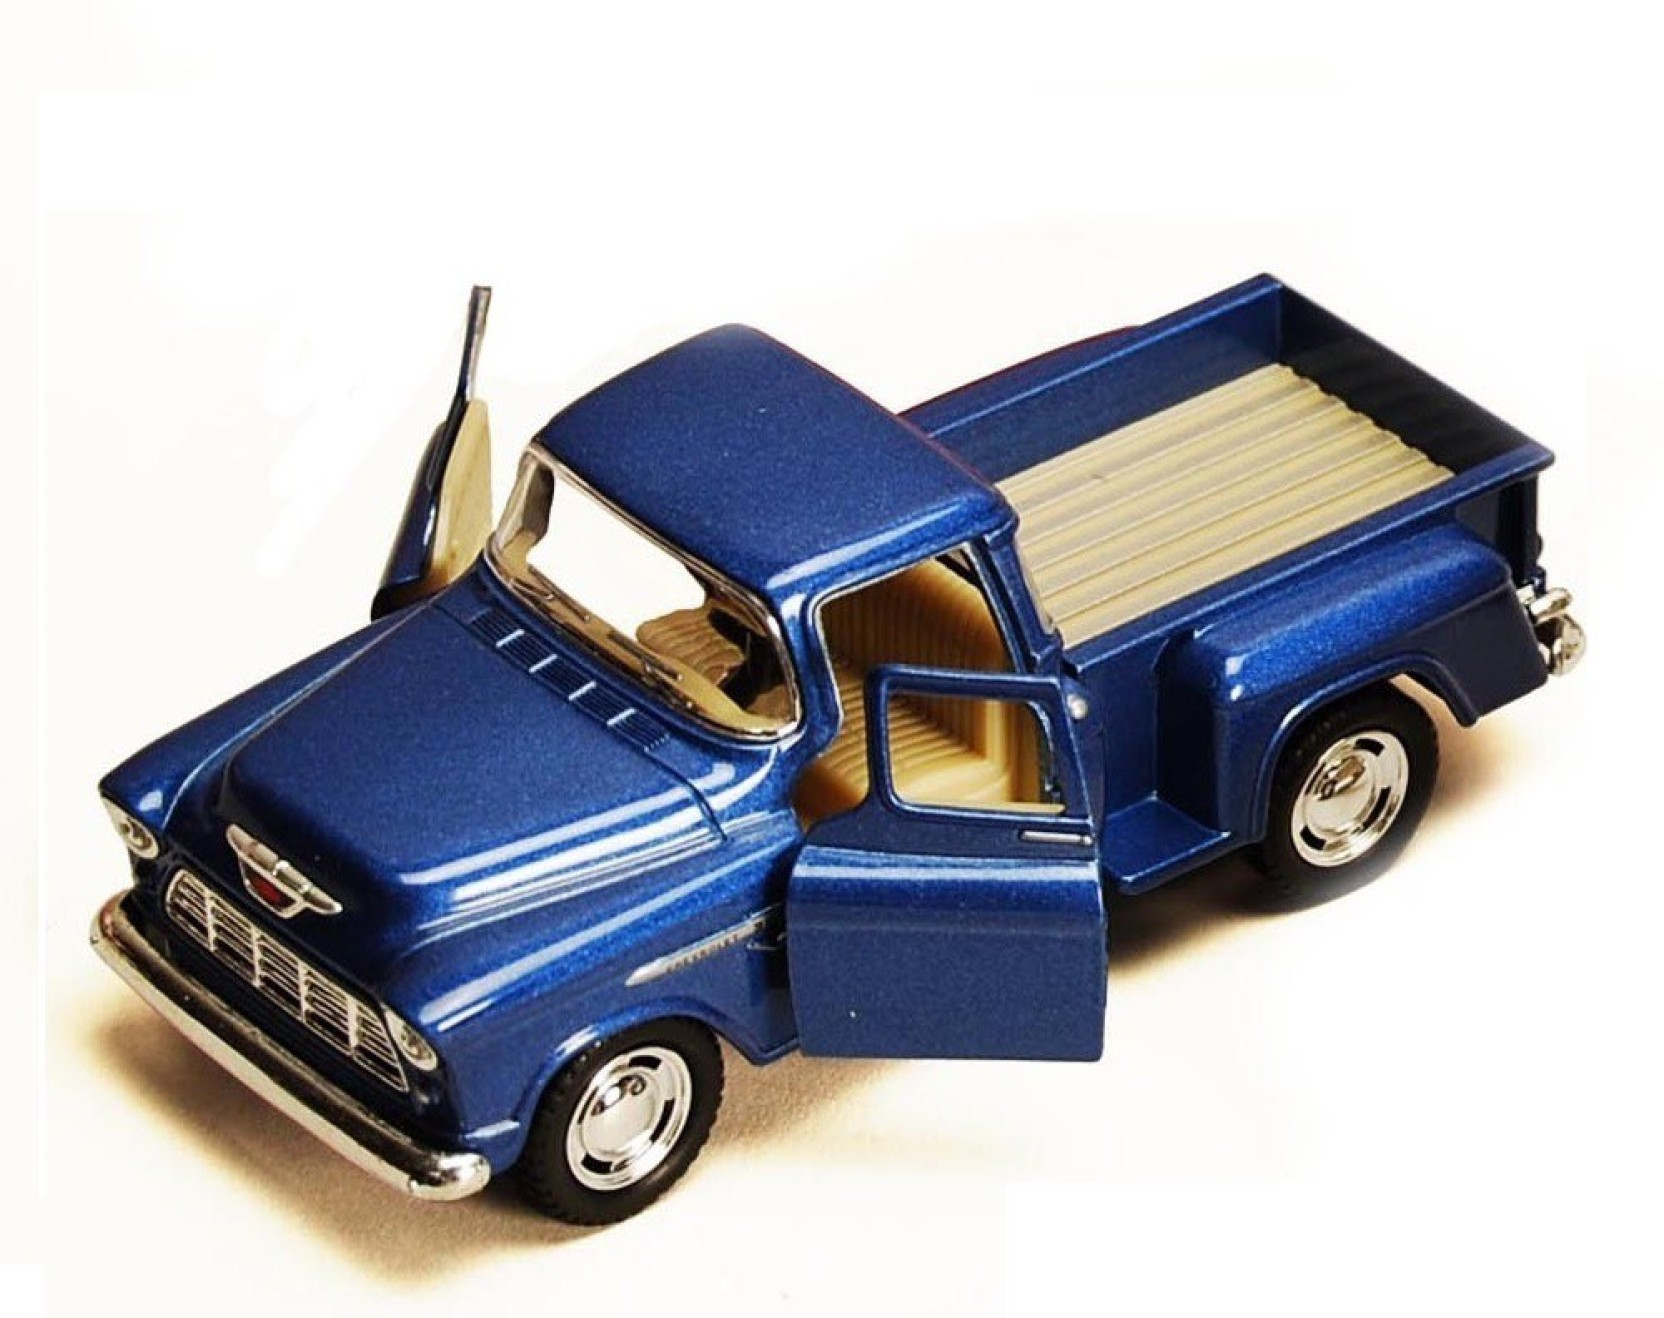 Kinsmart 5 132 Scale 1955 Chevy Stepside Pickup Diecast Model Door Ford F100 Add To Cart